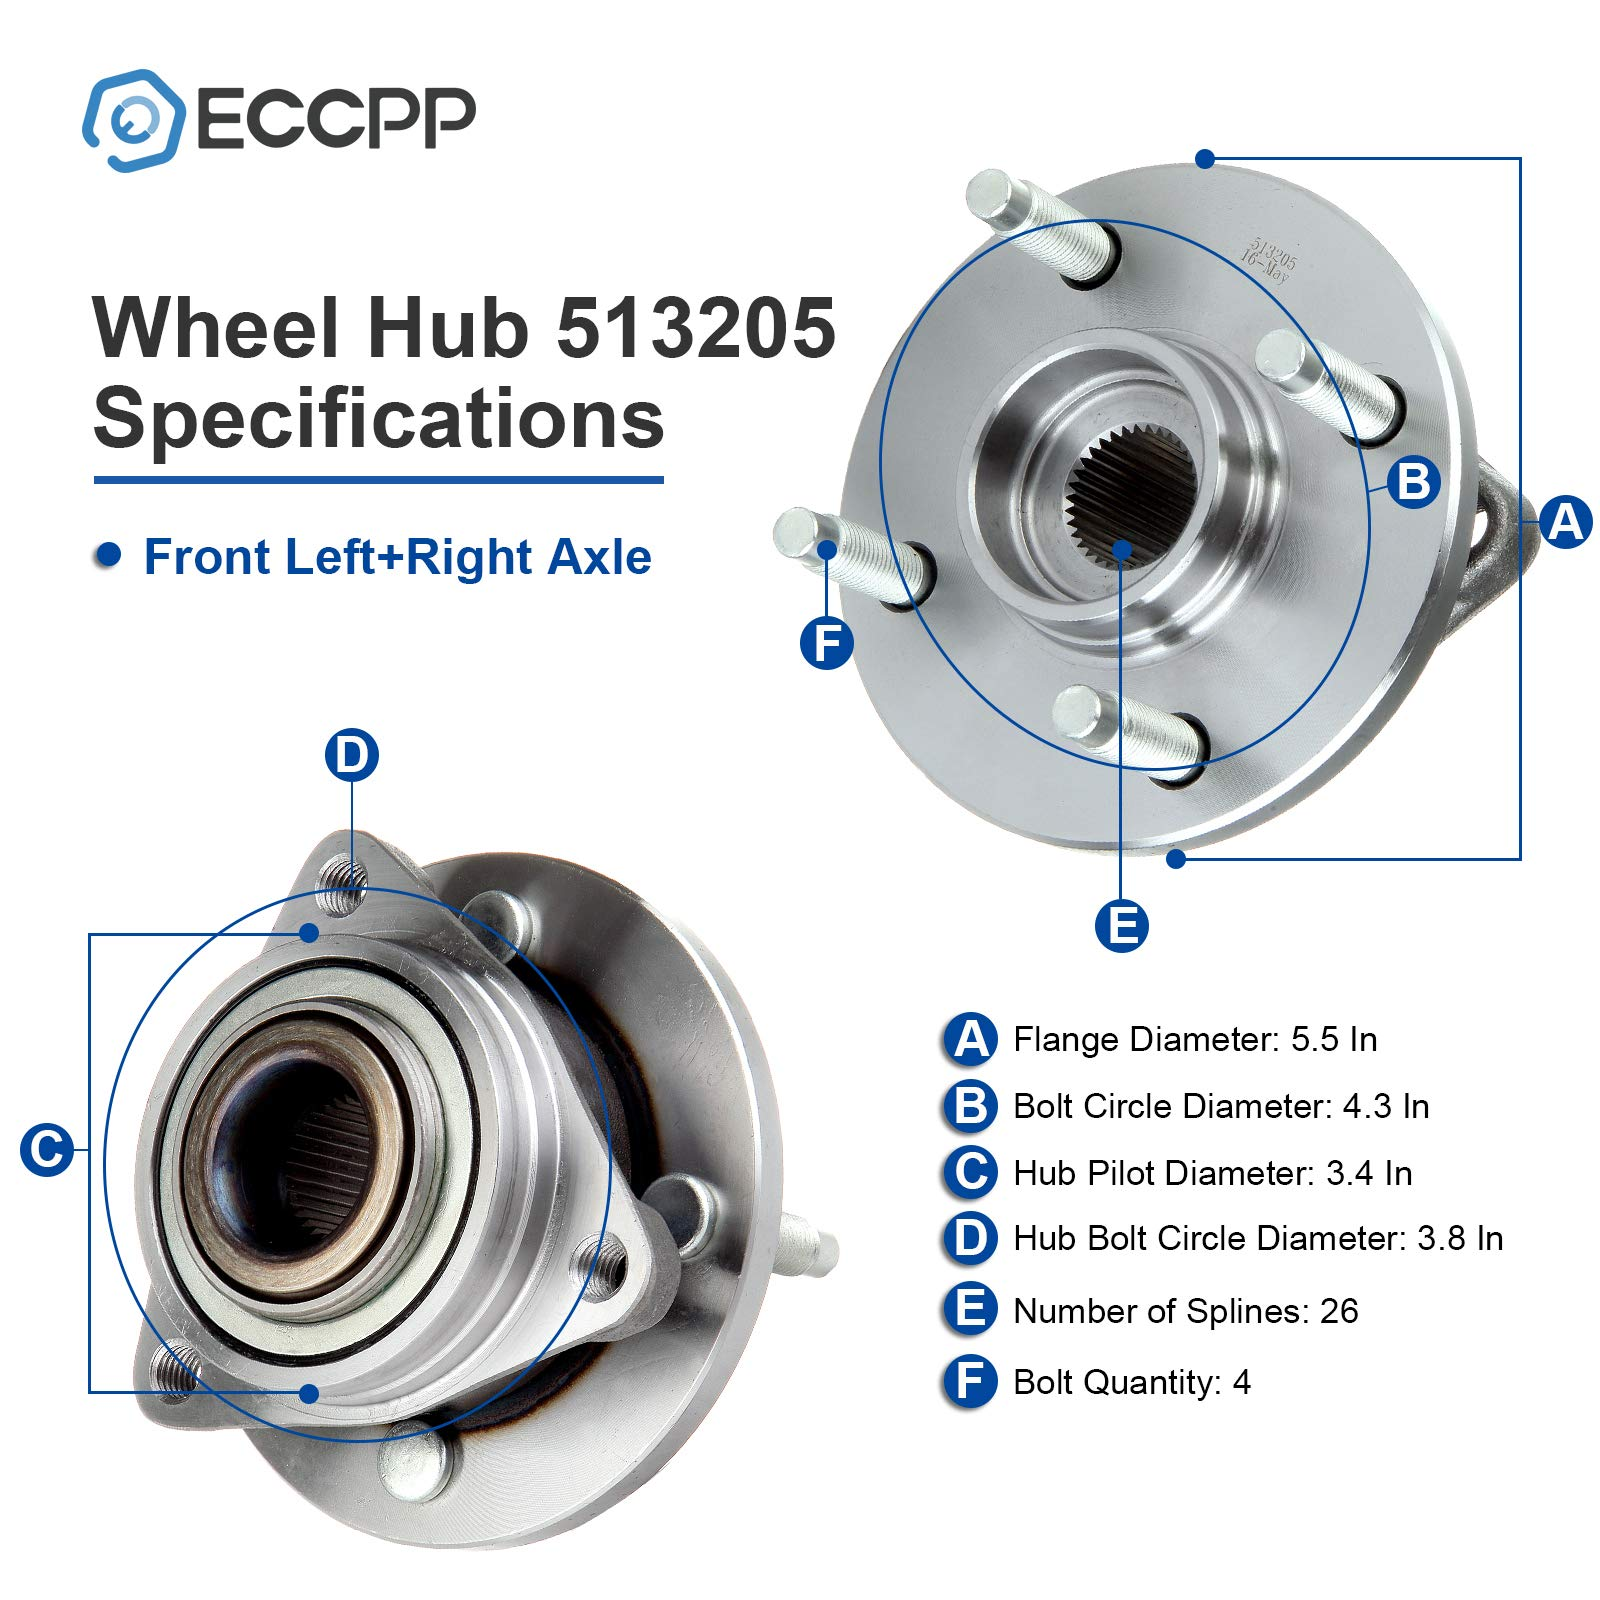 1 Brand New Wheel Hub Bearing Front 03-07 Fits Saturn Ion Chevy Cobalt 513205